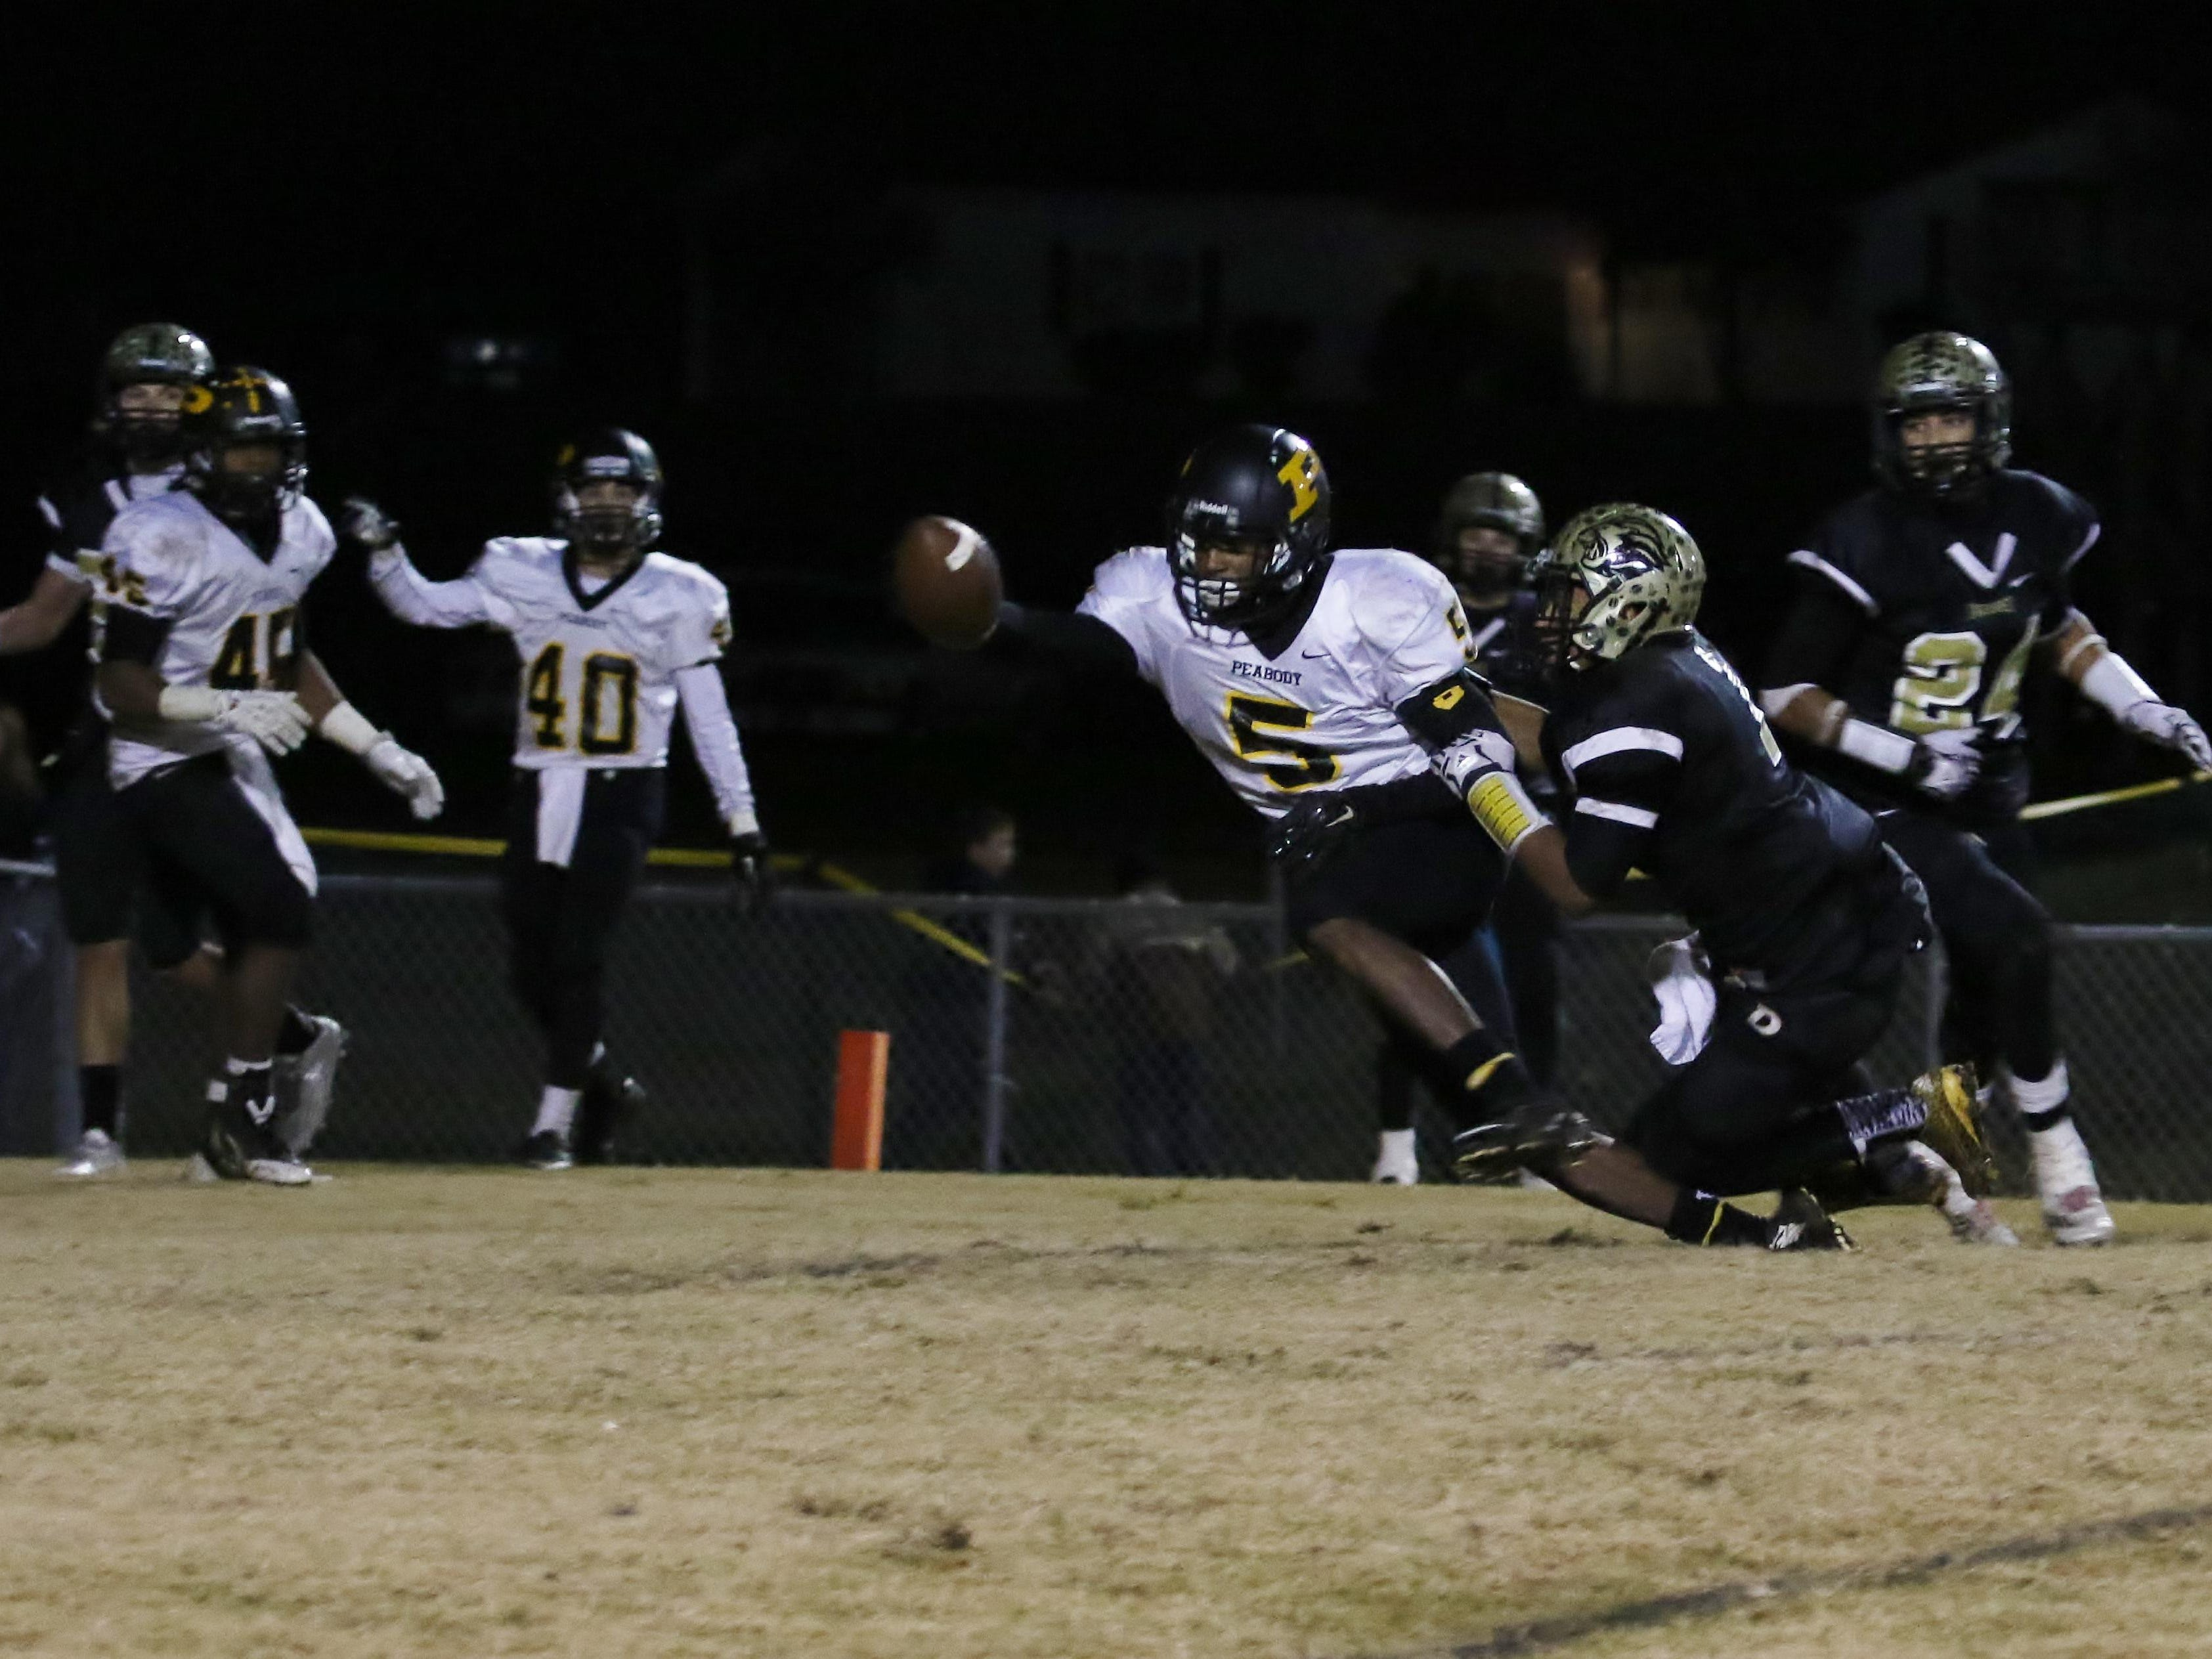 Peabody receiver Keyvon Goodwin tries to pull his way out of a tackle during the second half against Dresden during their Class 1A quarterfinal game last week.